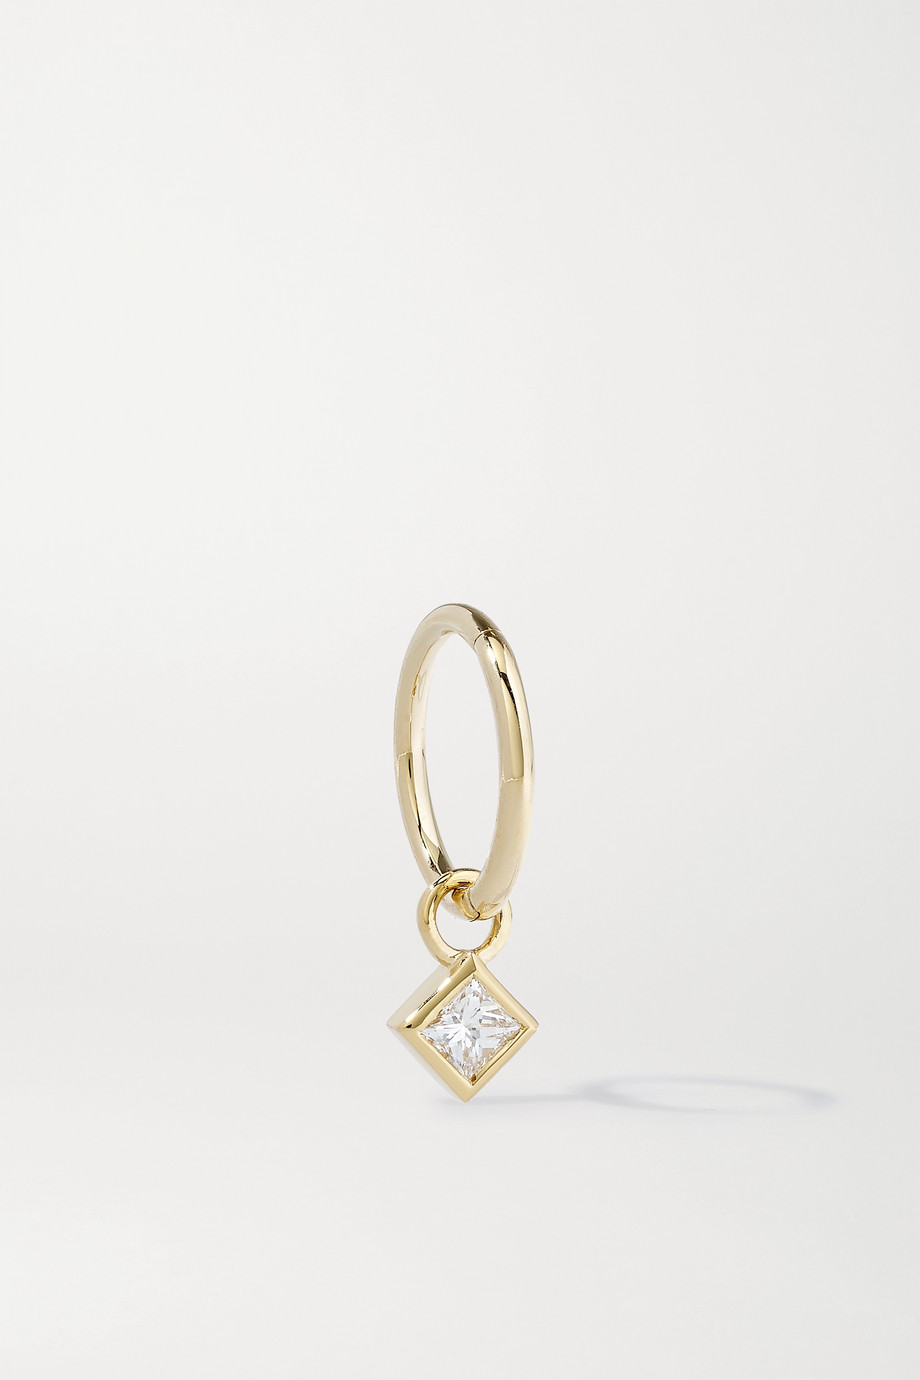 MARIA TASH 2.5mm 18-karat gold diamond hoop earring